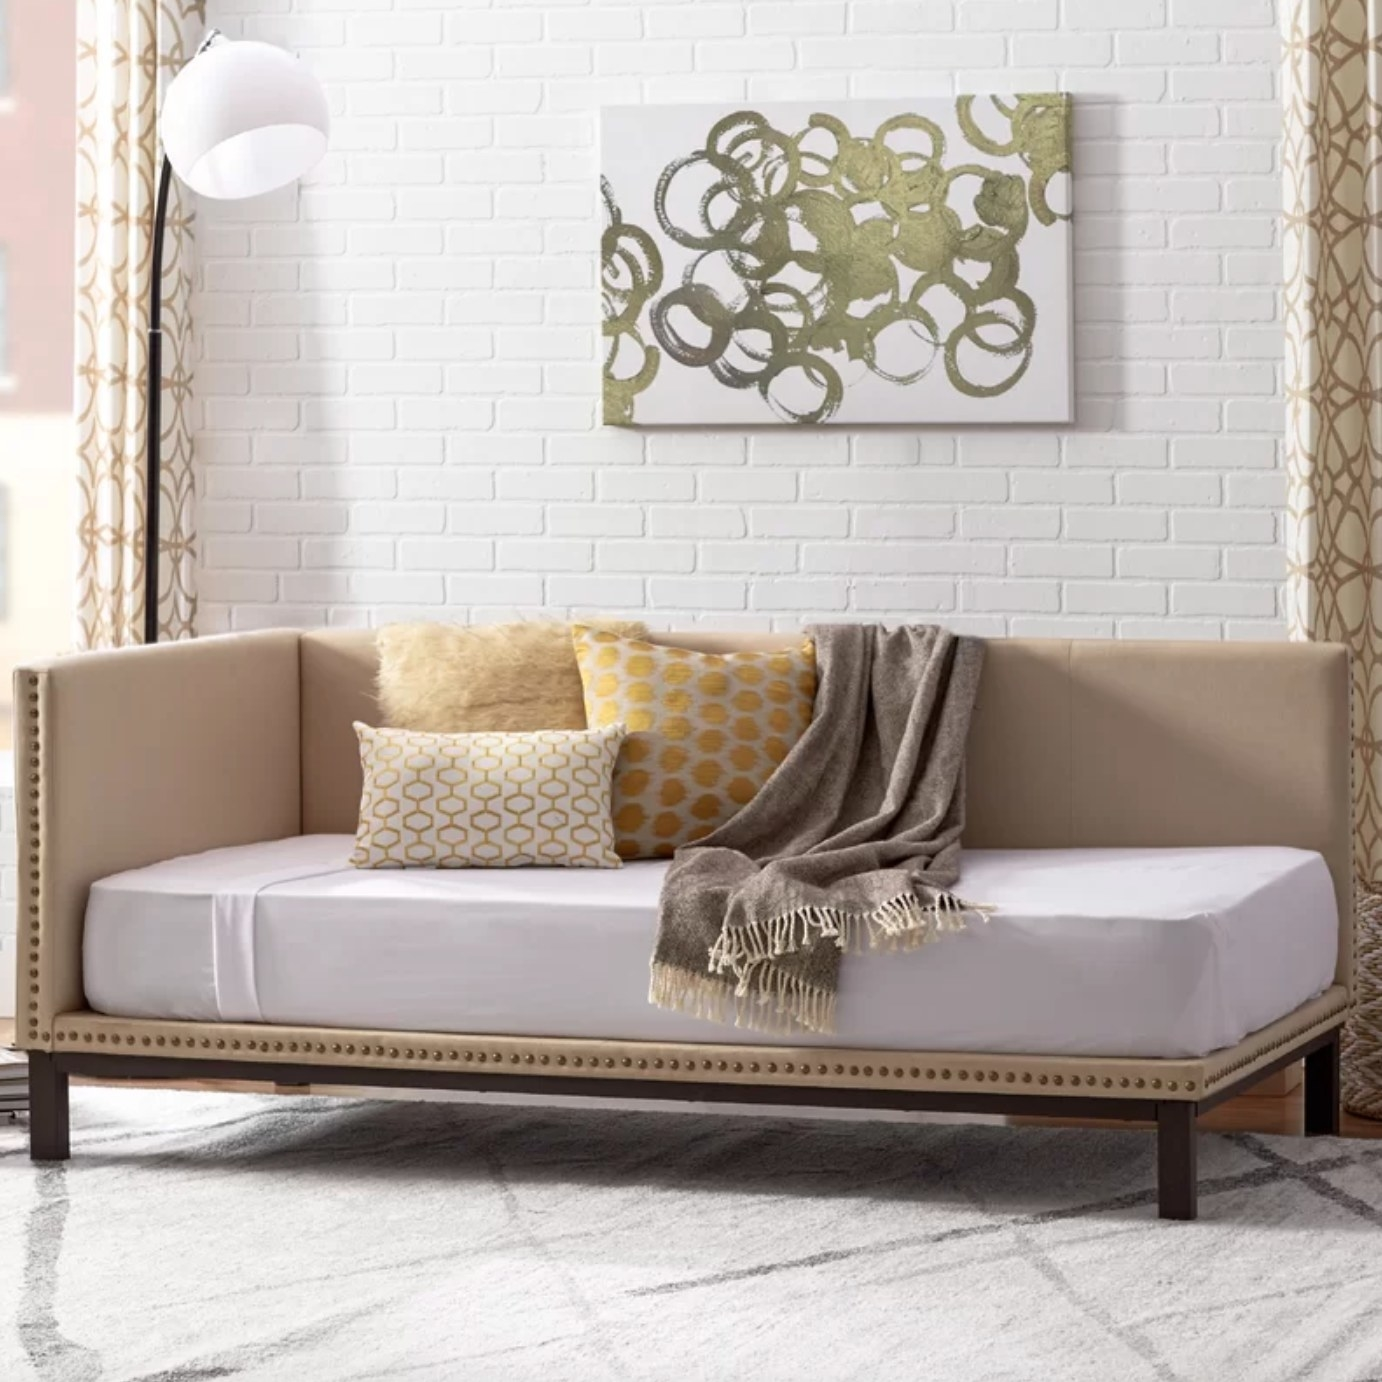 The metal mid century day bed in tan